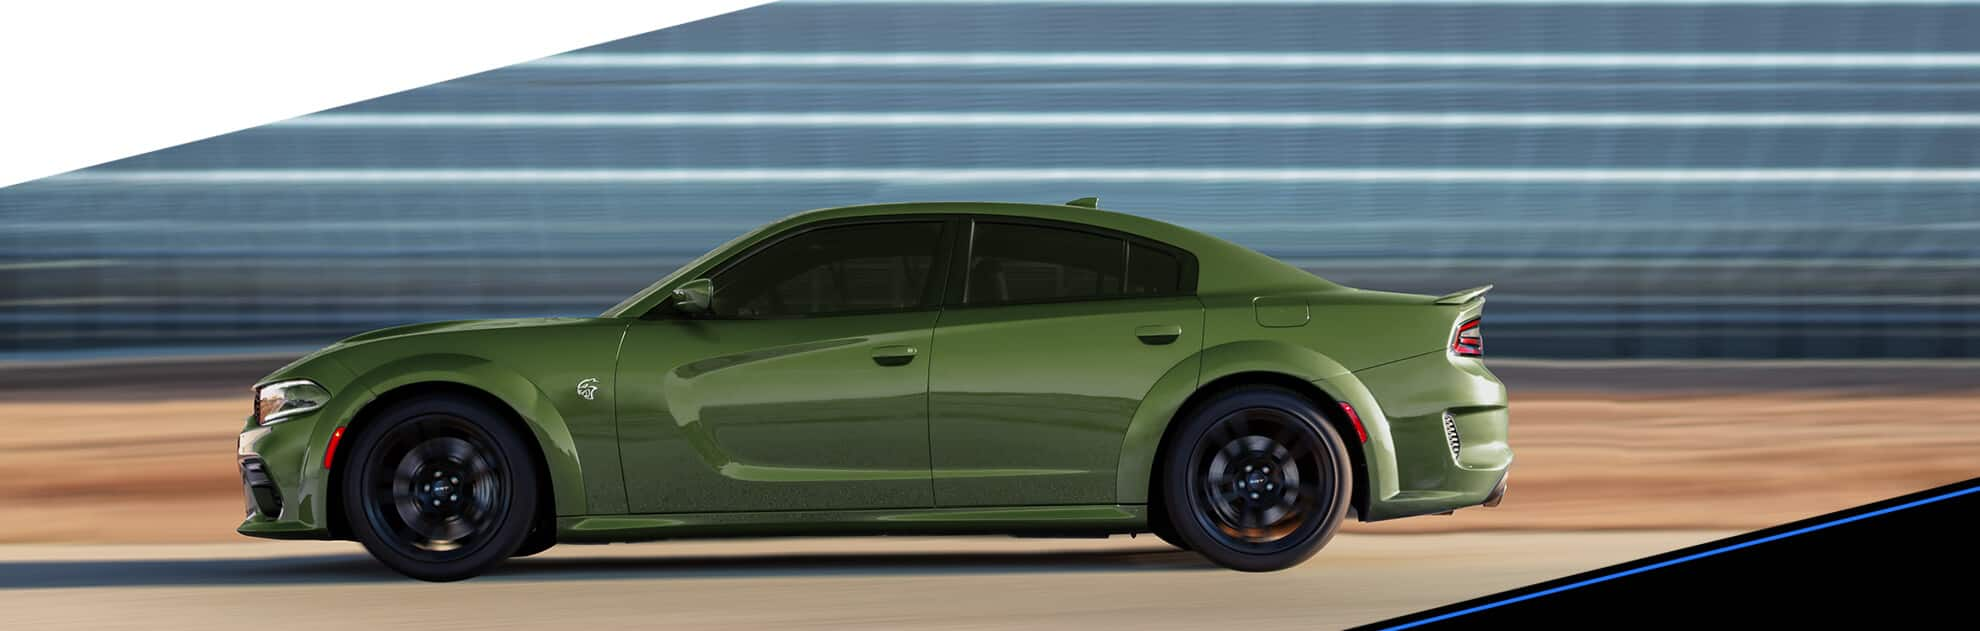 Dodge charger gt 2020